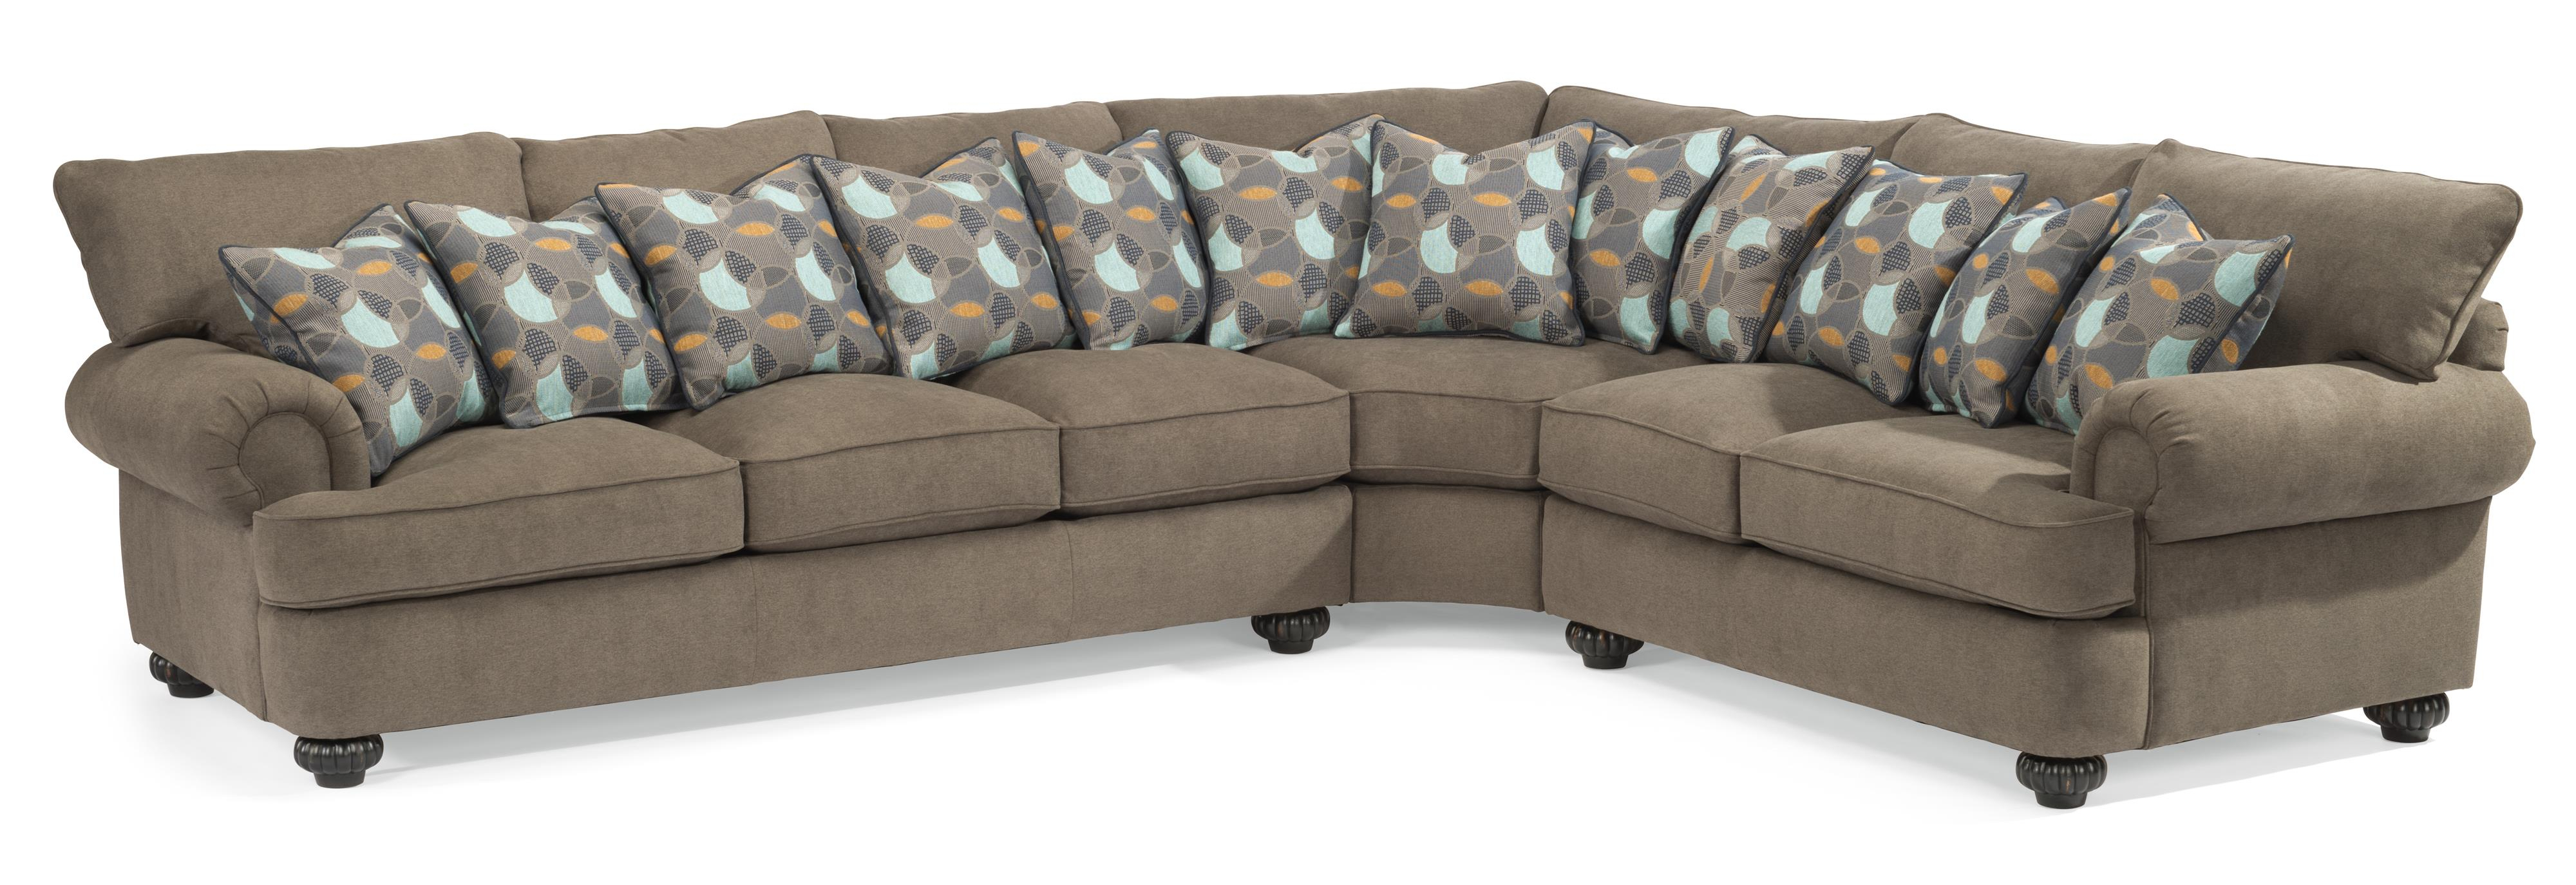 Flexsteel Patterson Three Piece Sectional Sofa With Rolled Arms Within Patterson Ii Arm Sofa Chairs (Image 5 of 25)